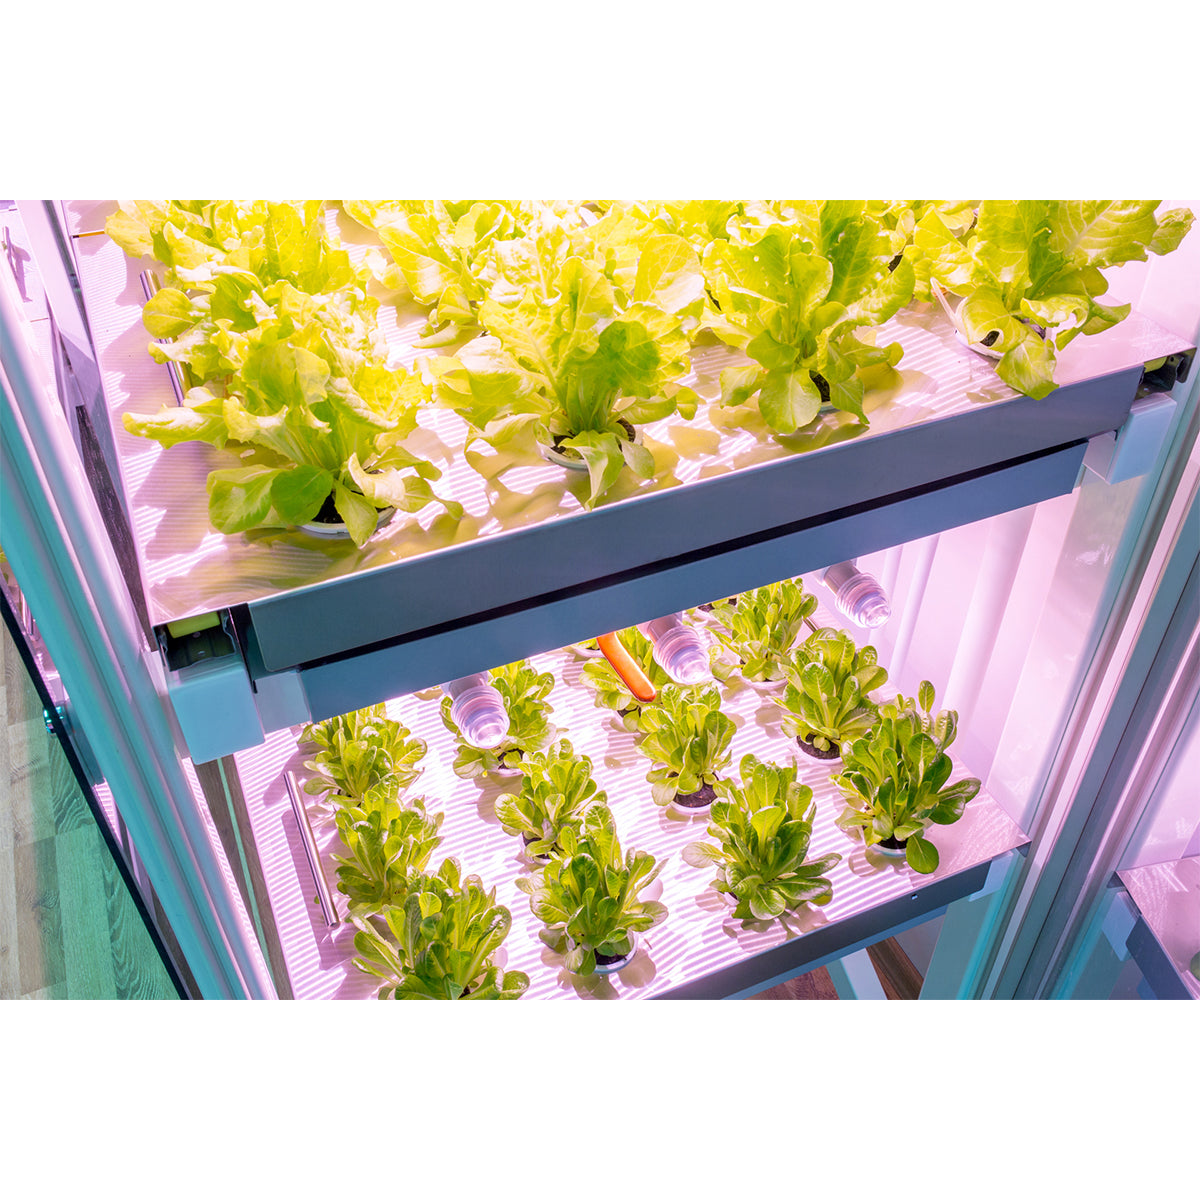 Smart Farm indoor plant growing system | Click & Grow